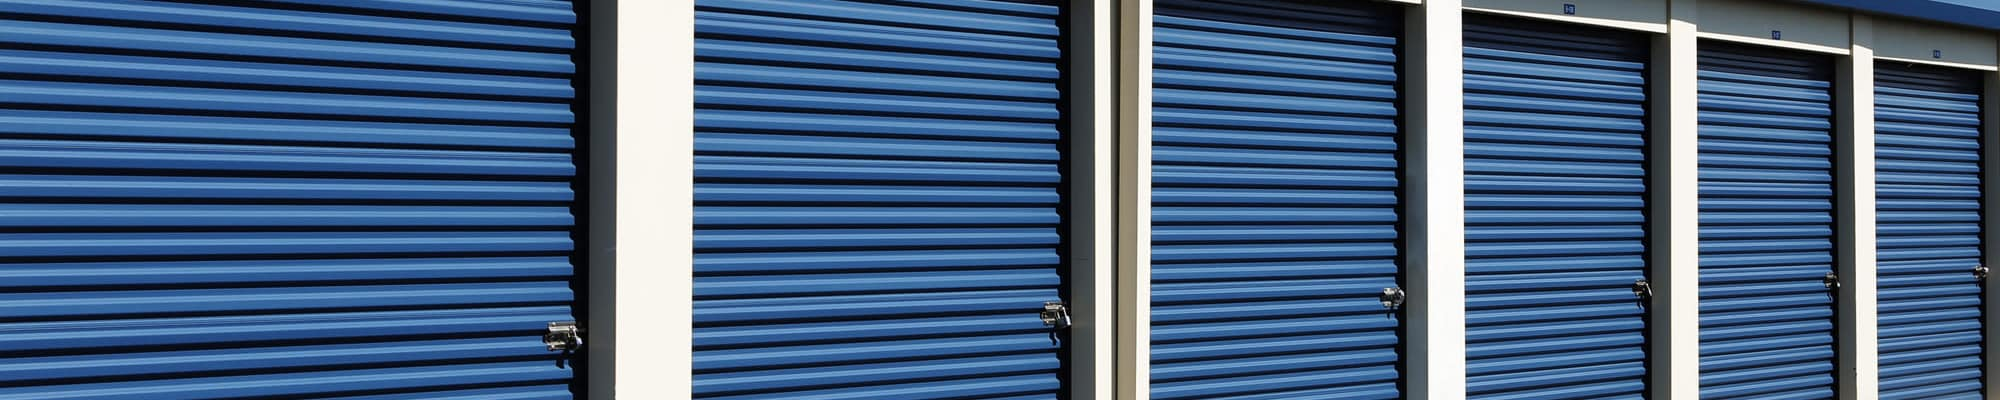 Self storage unit sizes and prices at Midgard Self Storage in Greenville, South Carolina